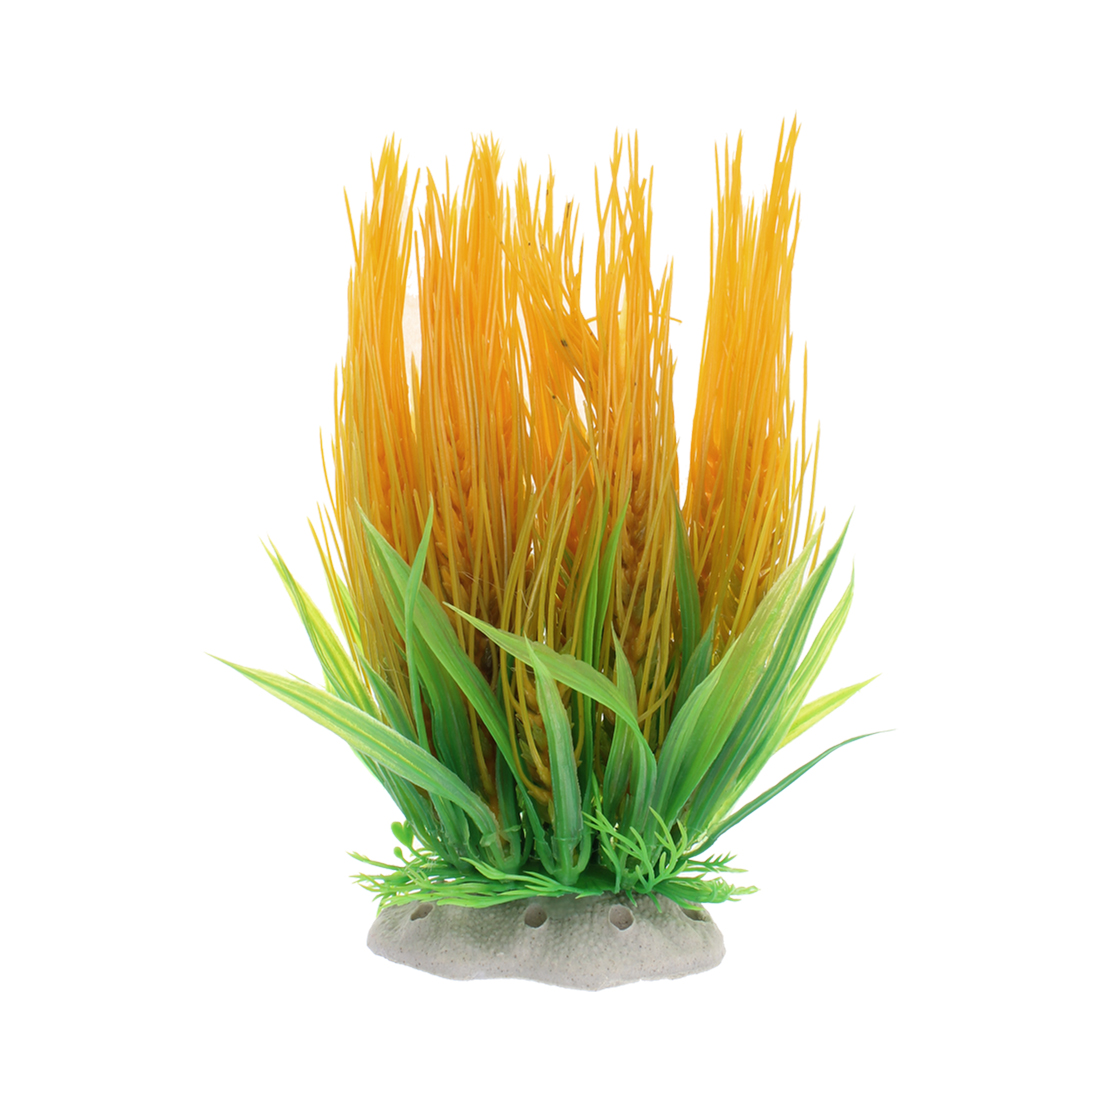 Aquarium Plastic Artificial Water Plant Grass Landscaping Decor Yellow Green